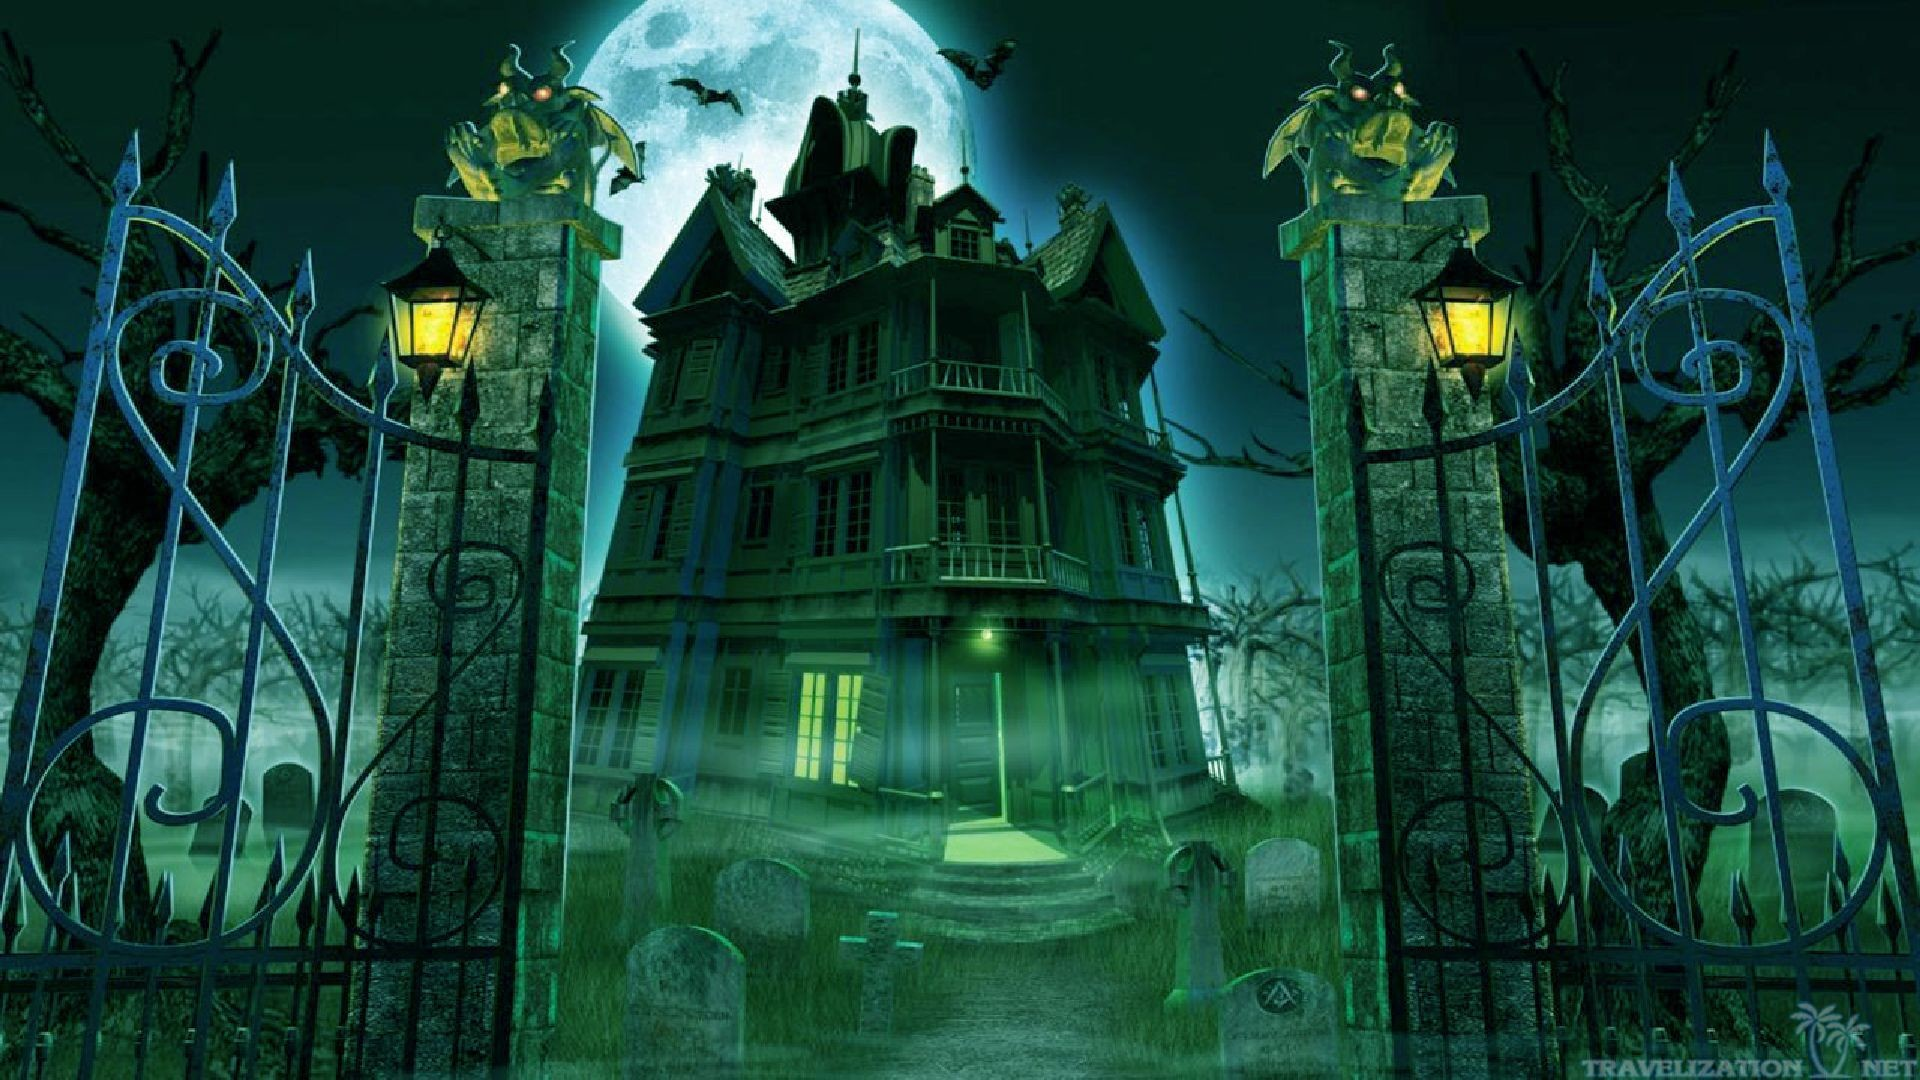 Haunted house wallpapers 62 images for Wallpaper hd 1080p home